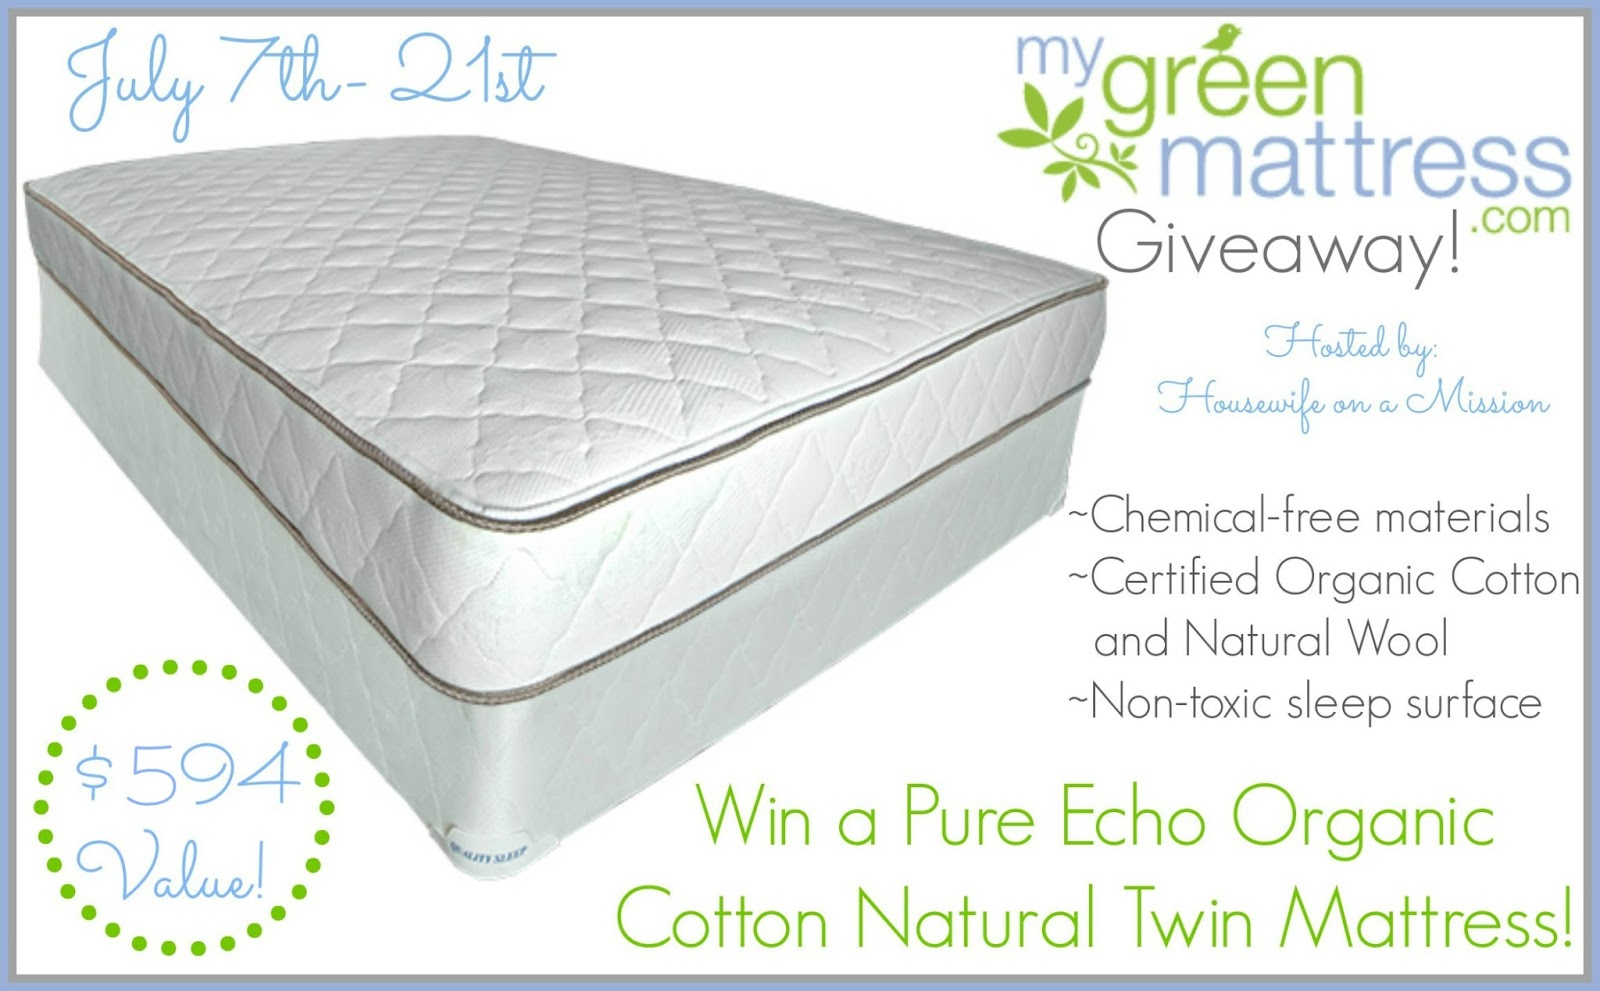 My Green Mattress Giveaway – Ends 7/21